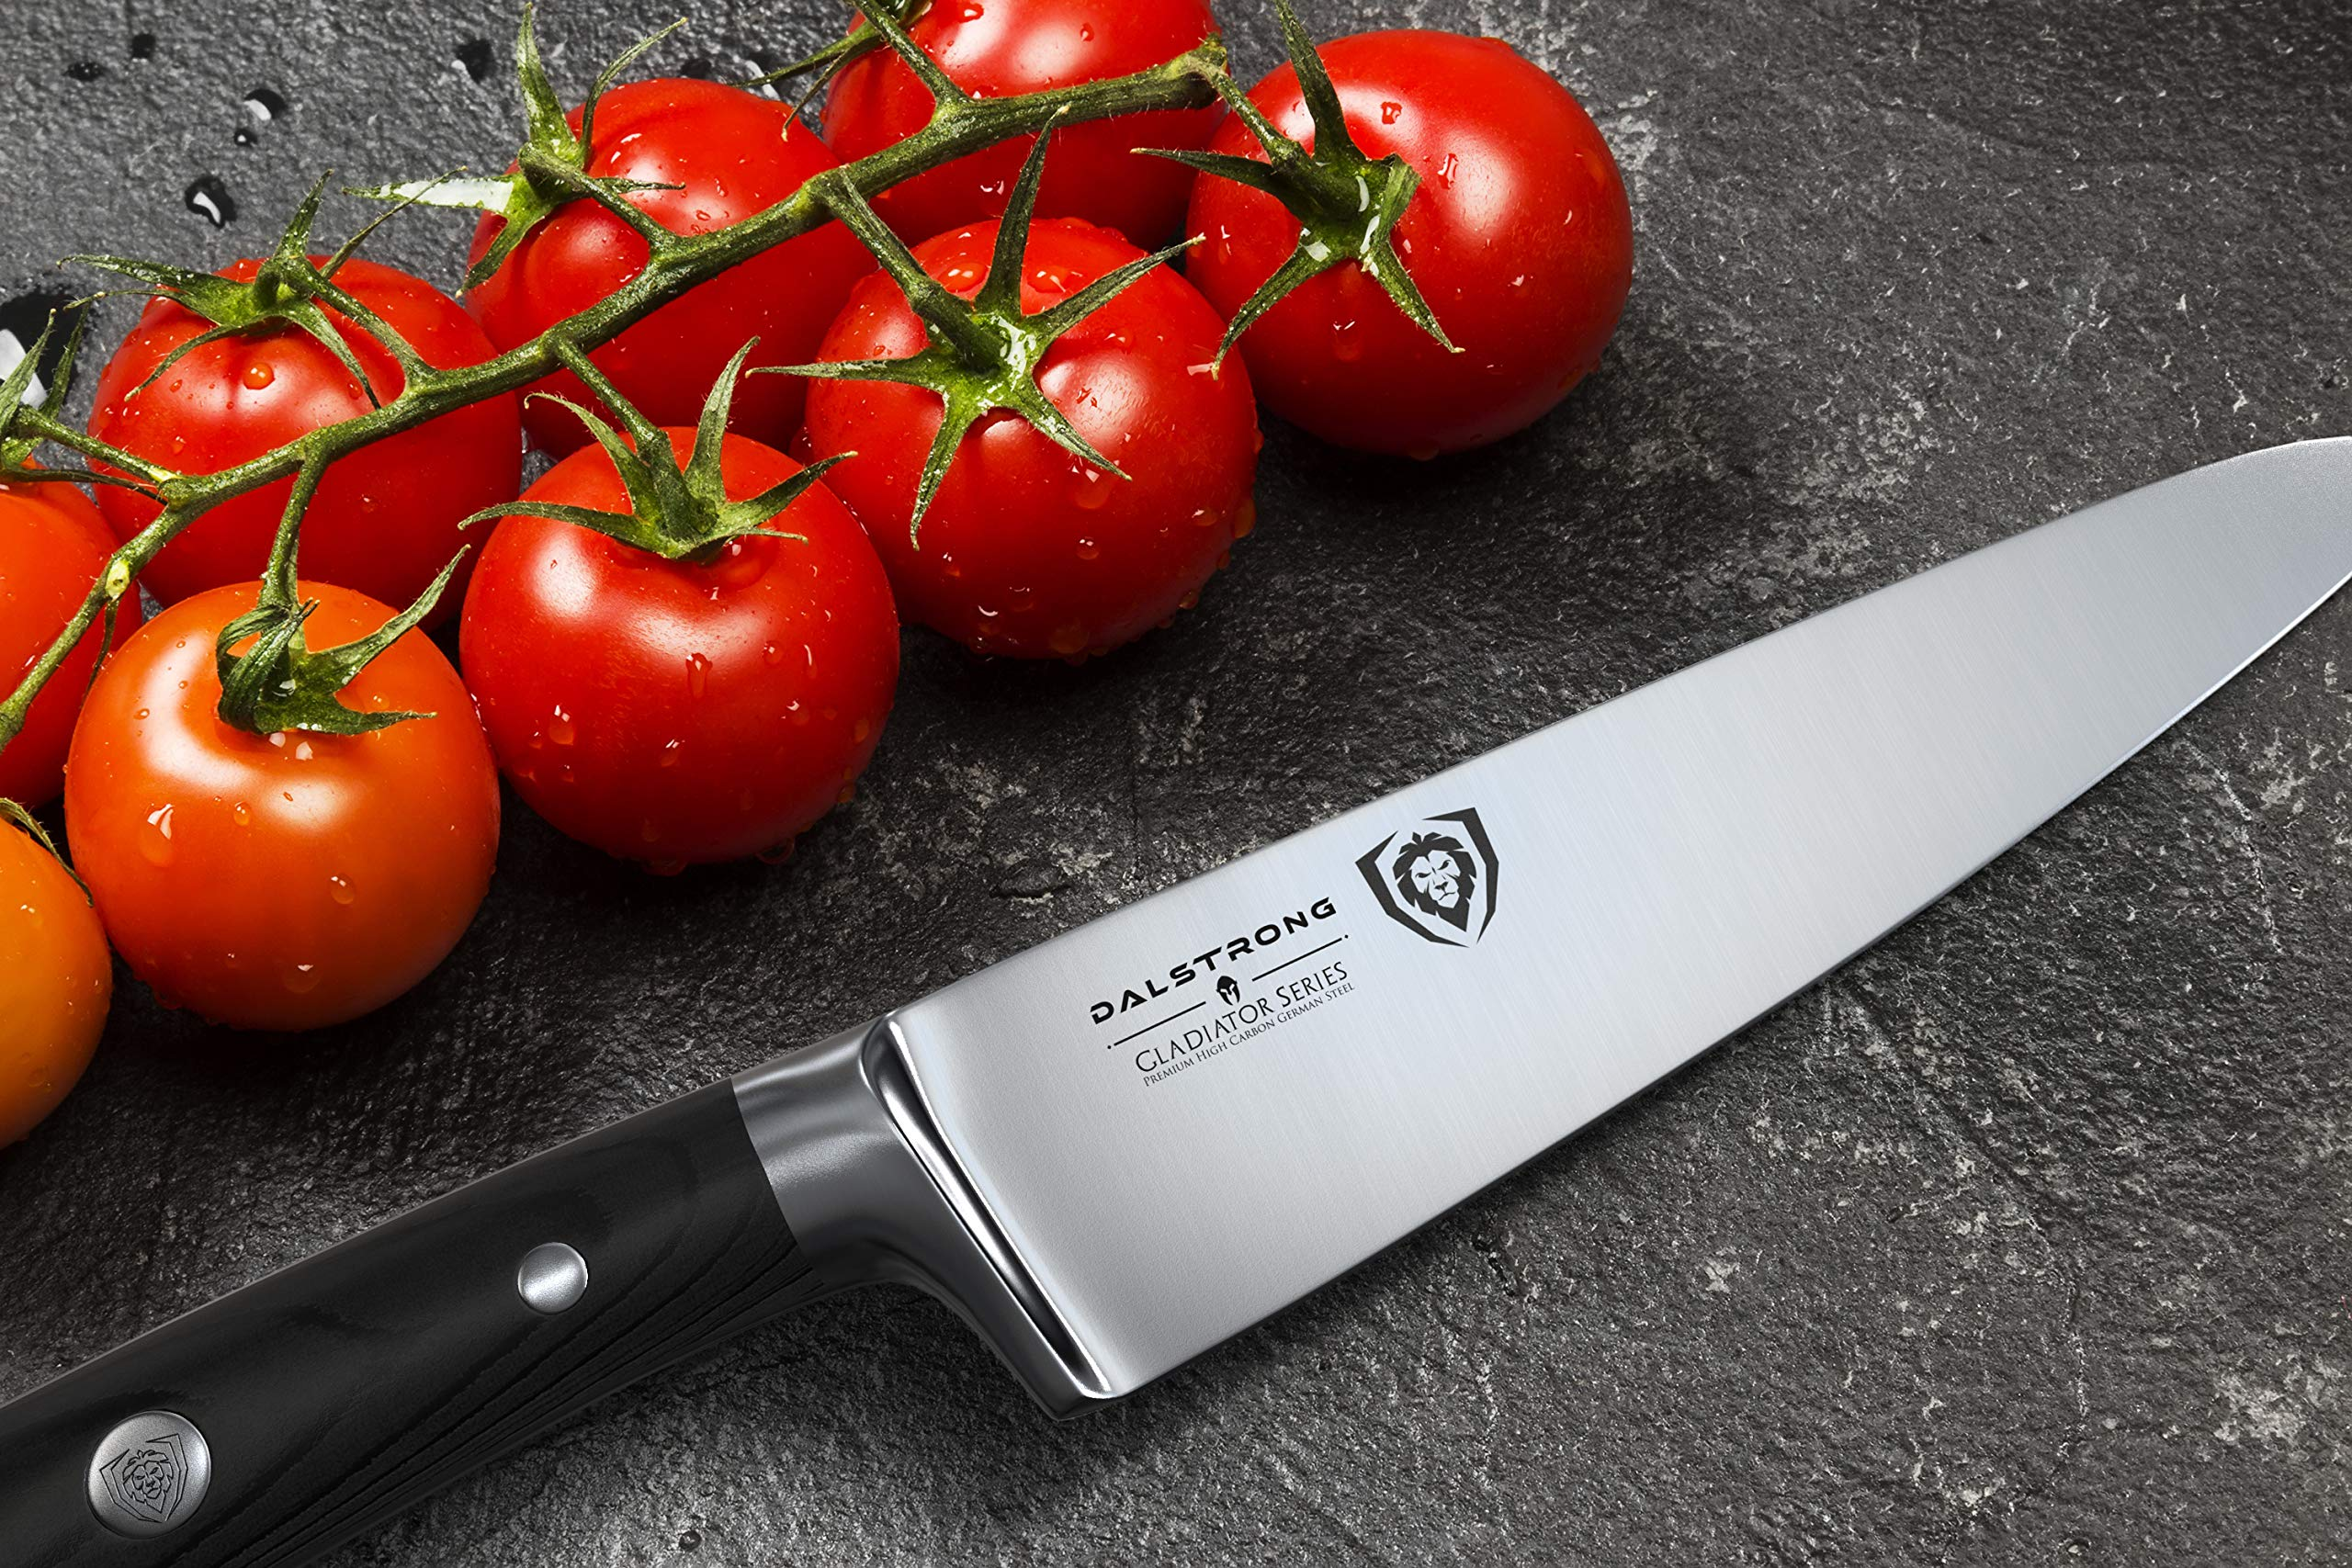 Dalstrong Chef's Knife - Gladiator Series - German HC Steel - 7'' w/Sheath by Dalstrong (Image #6)